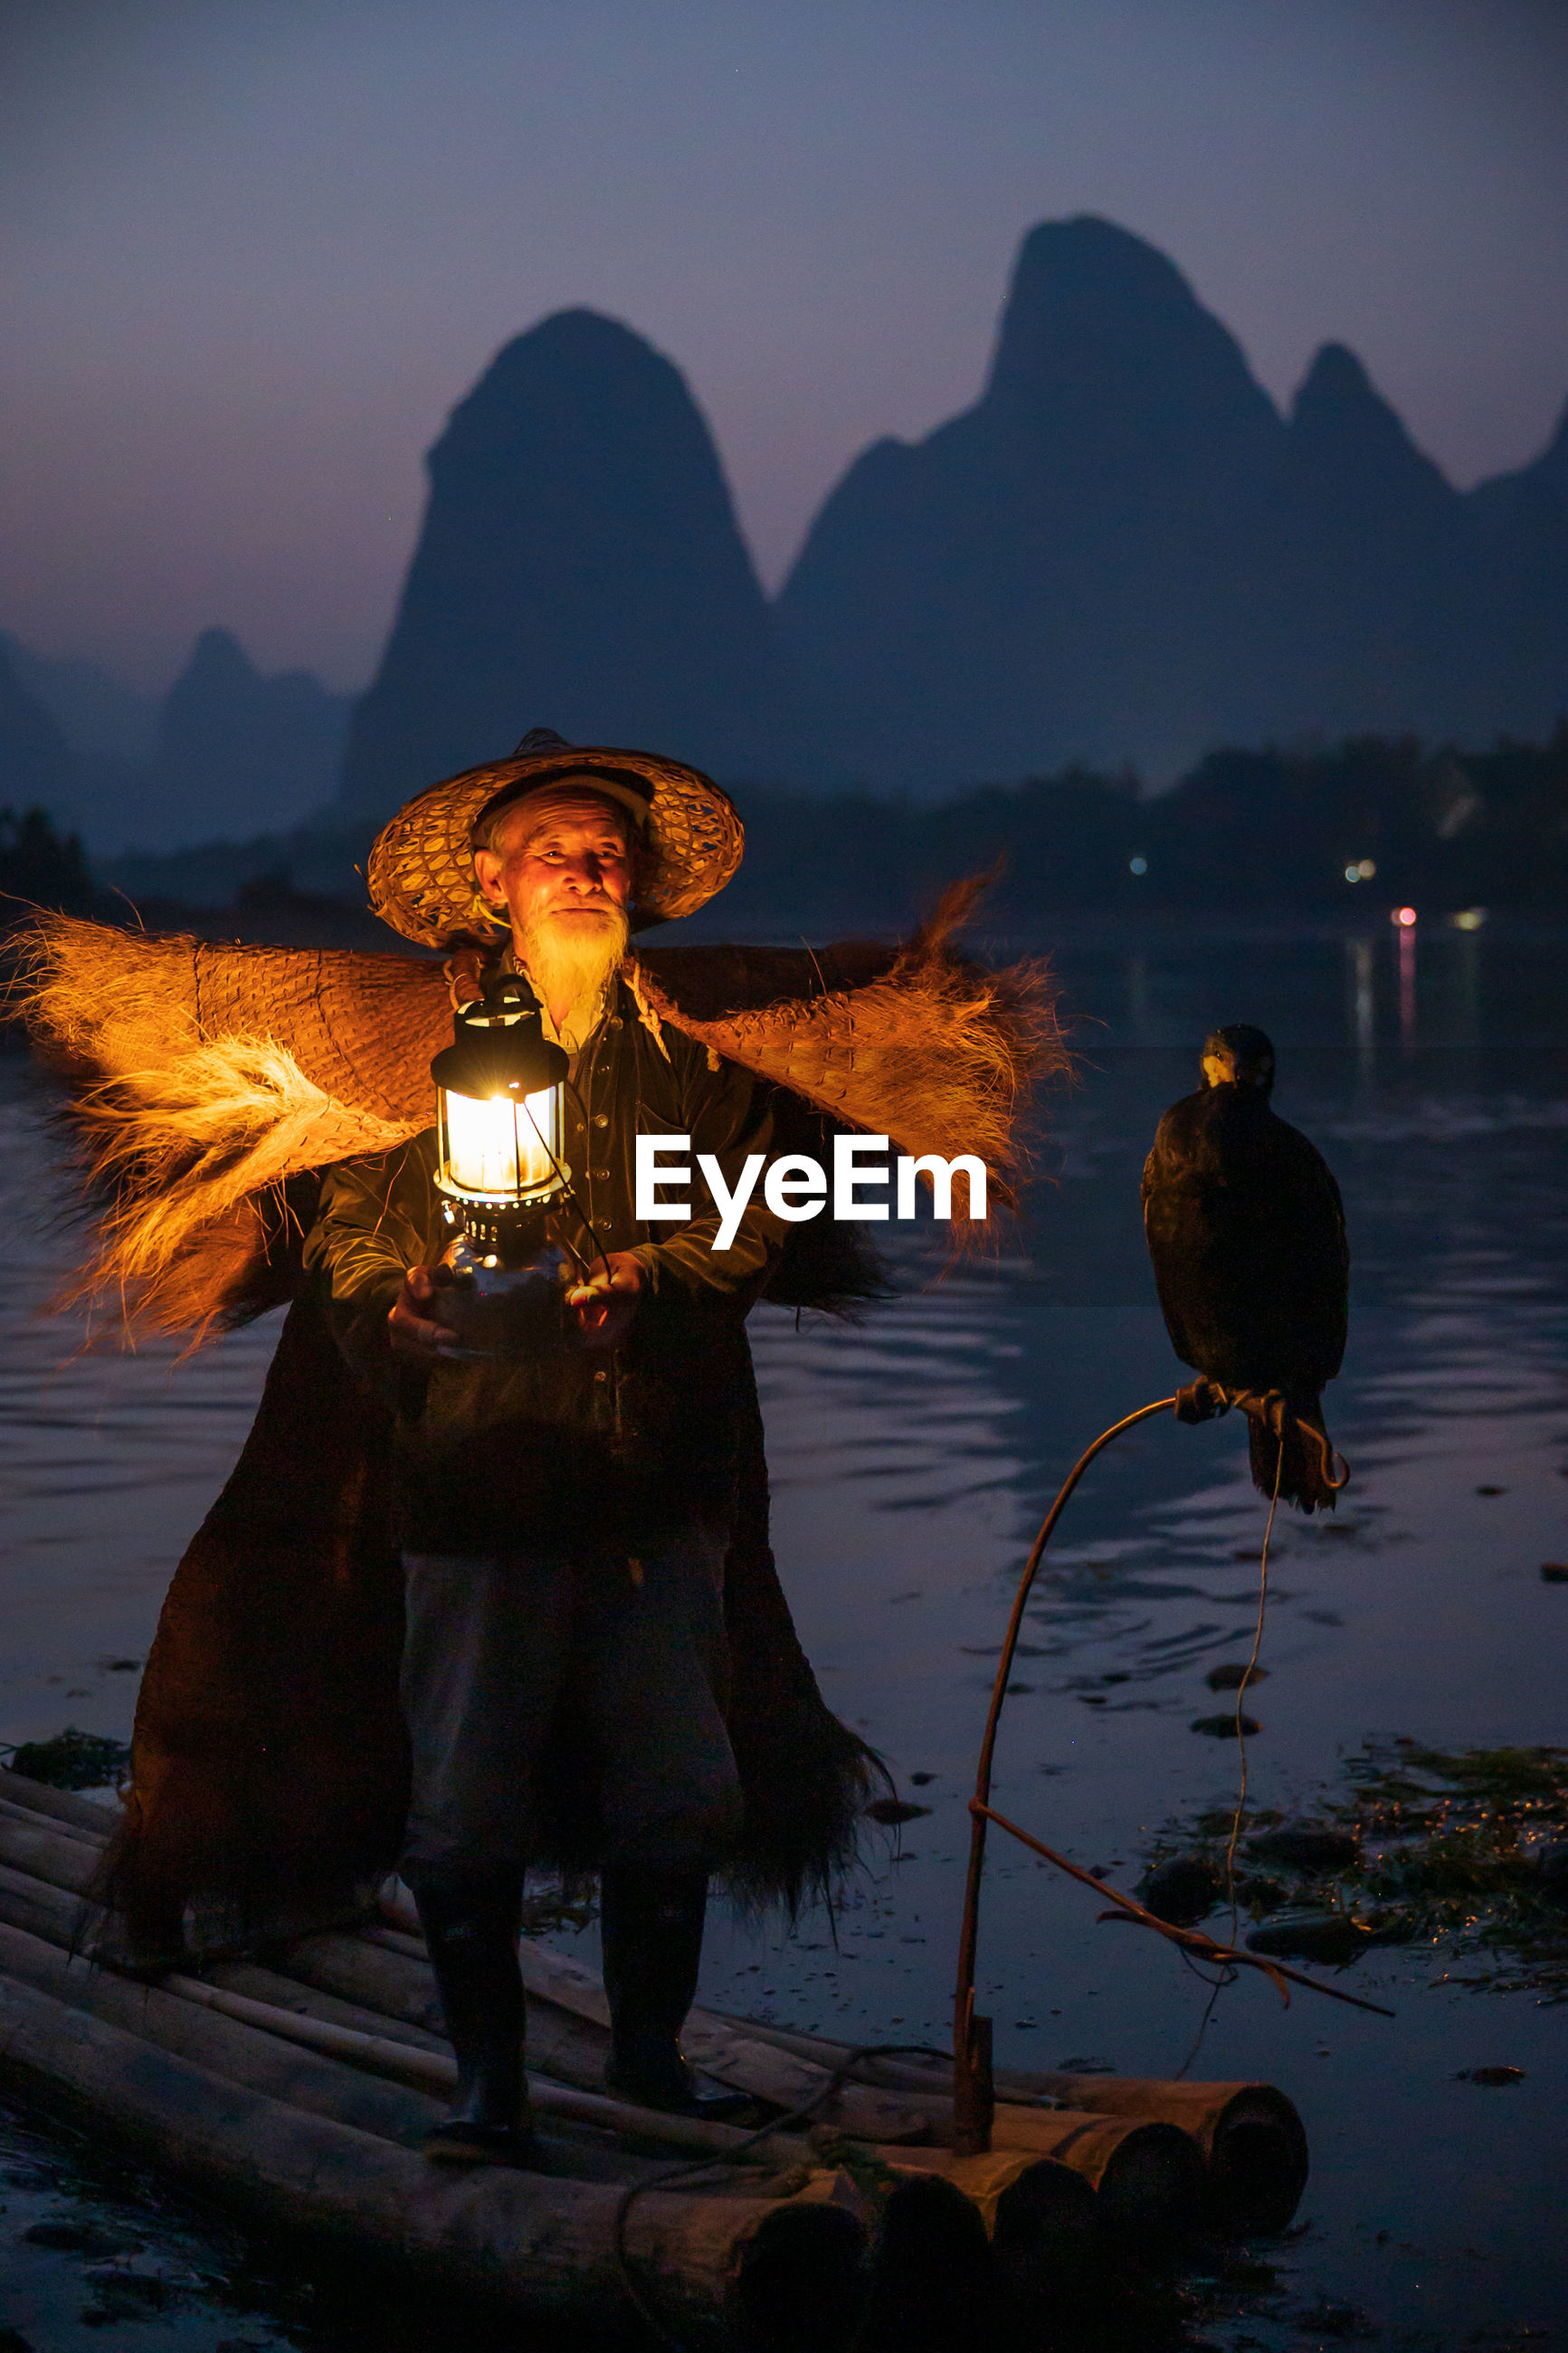 Man with lantern standing by bird on boat in lake against sky during sunset